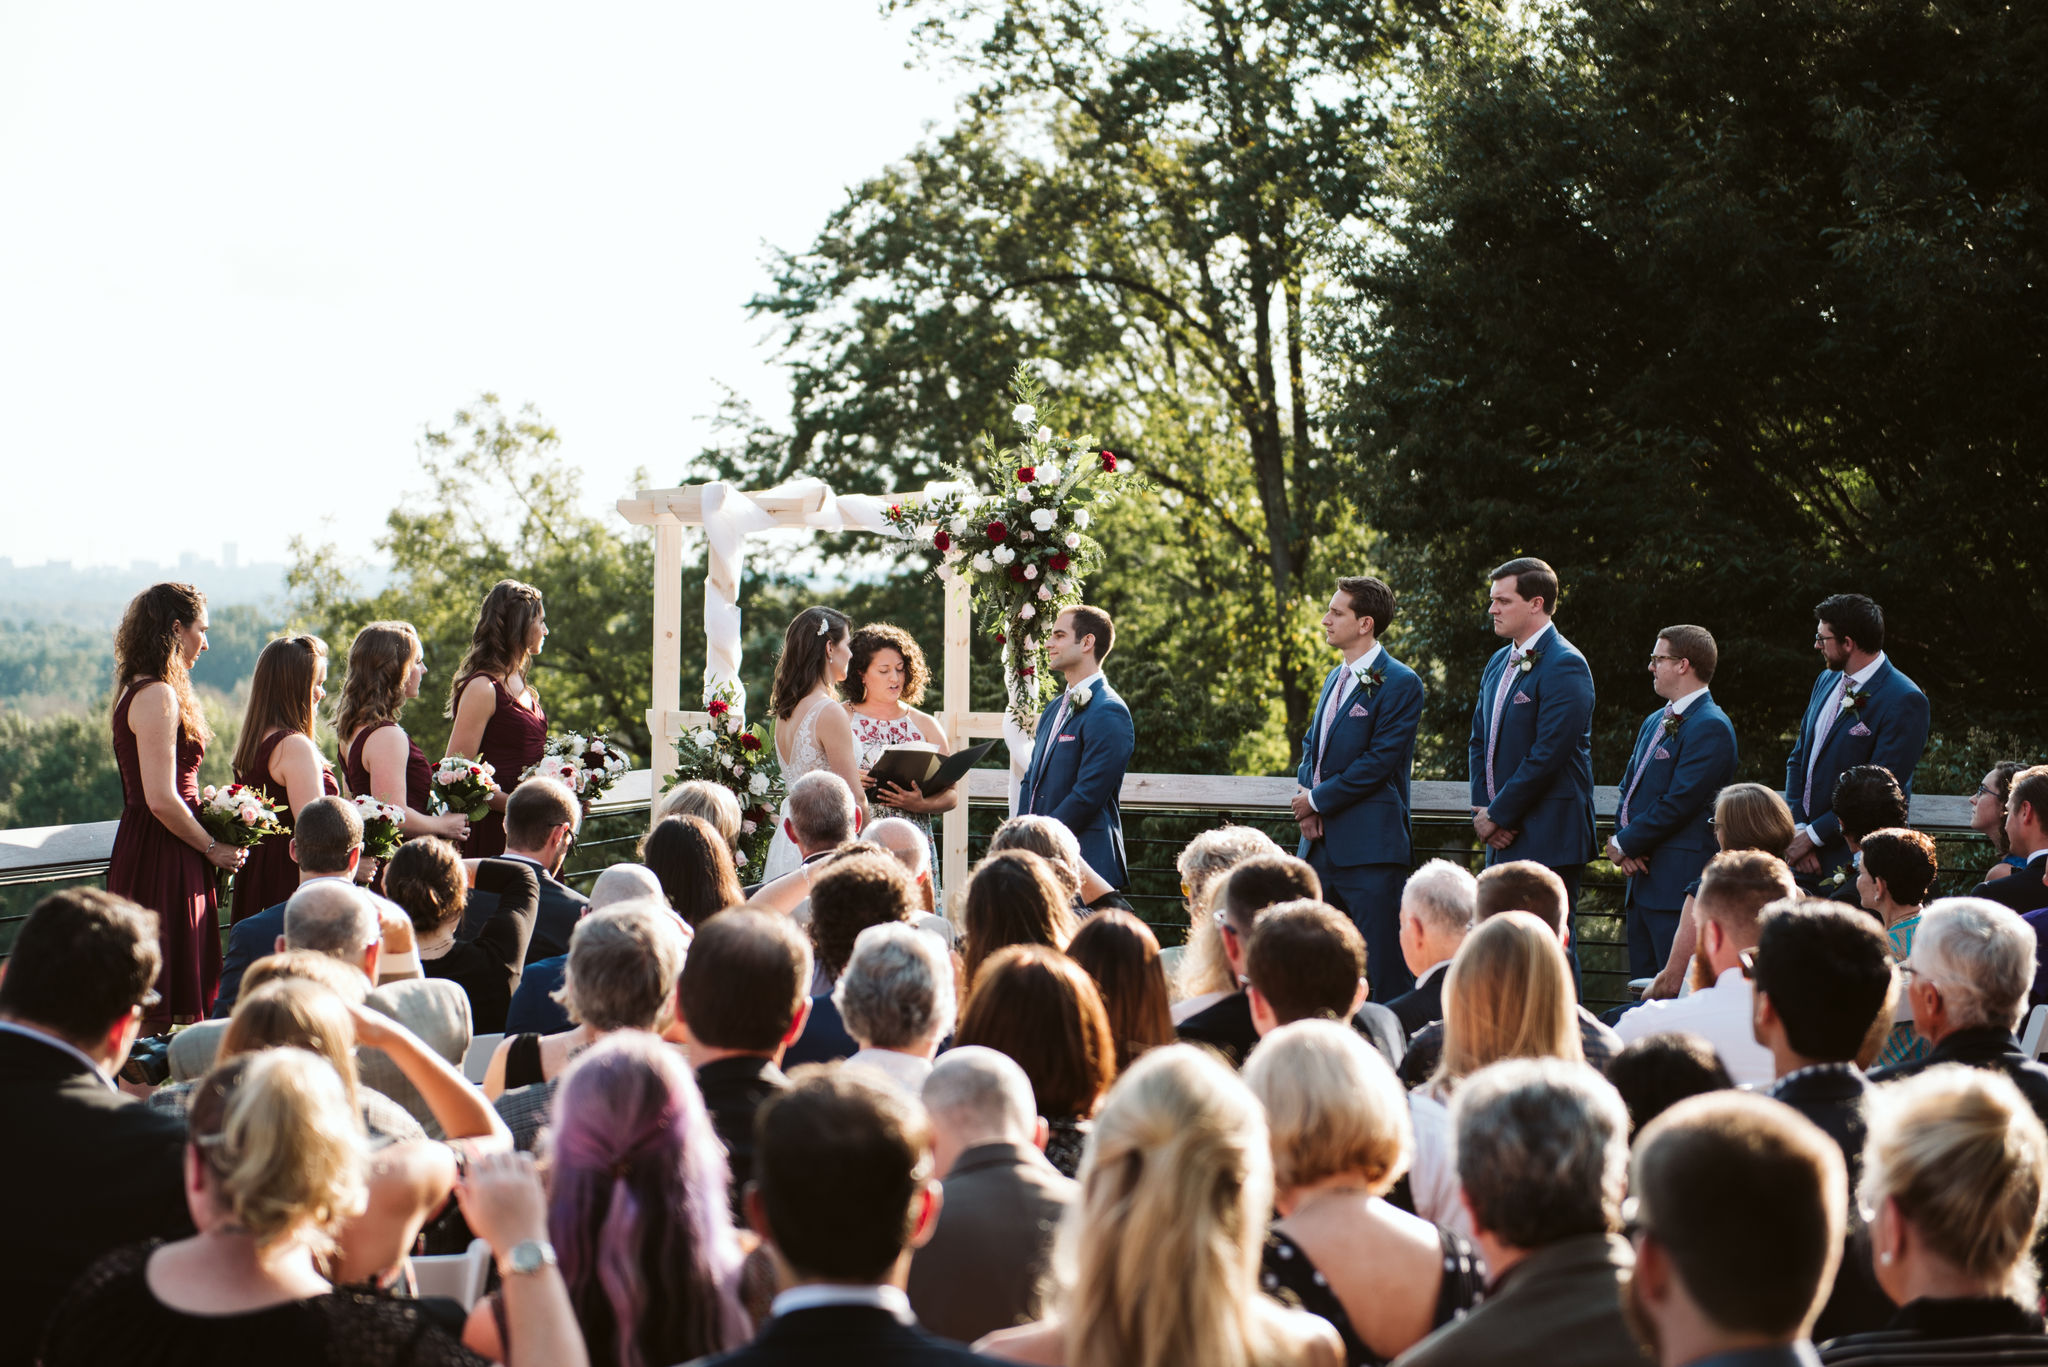 Phoenix Maryland, Baltimore Wedding Photographer, Eagle's Nest Country Club, Classic, Romantic, Overall Photo of the Wedding, Couple Getting Married Surrounded by Family and Friends, Outdoor Ceremony